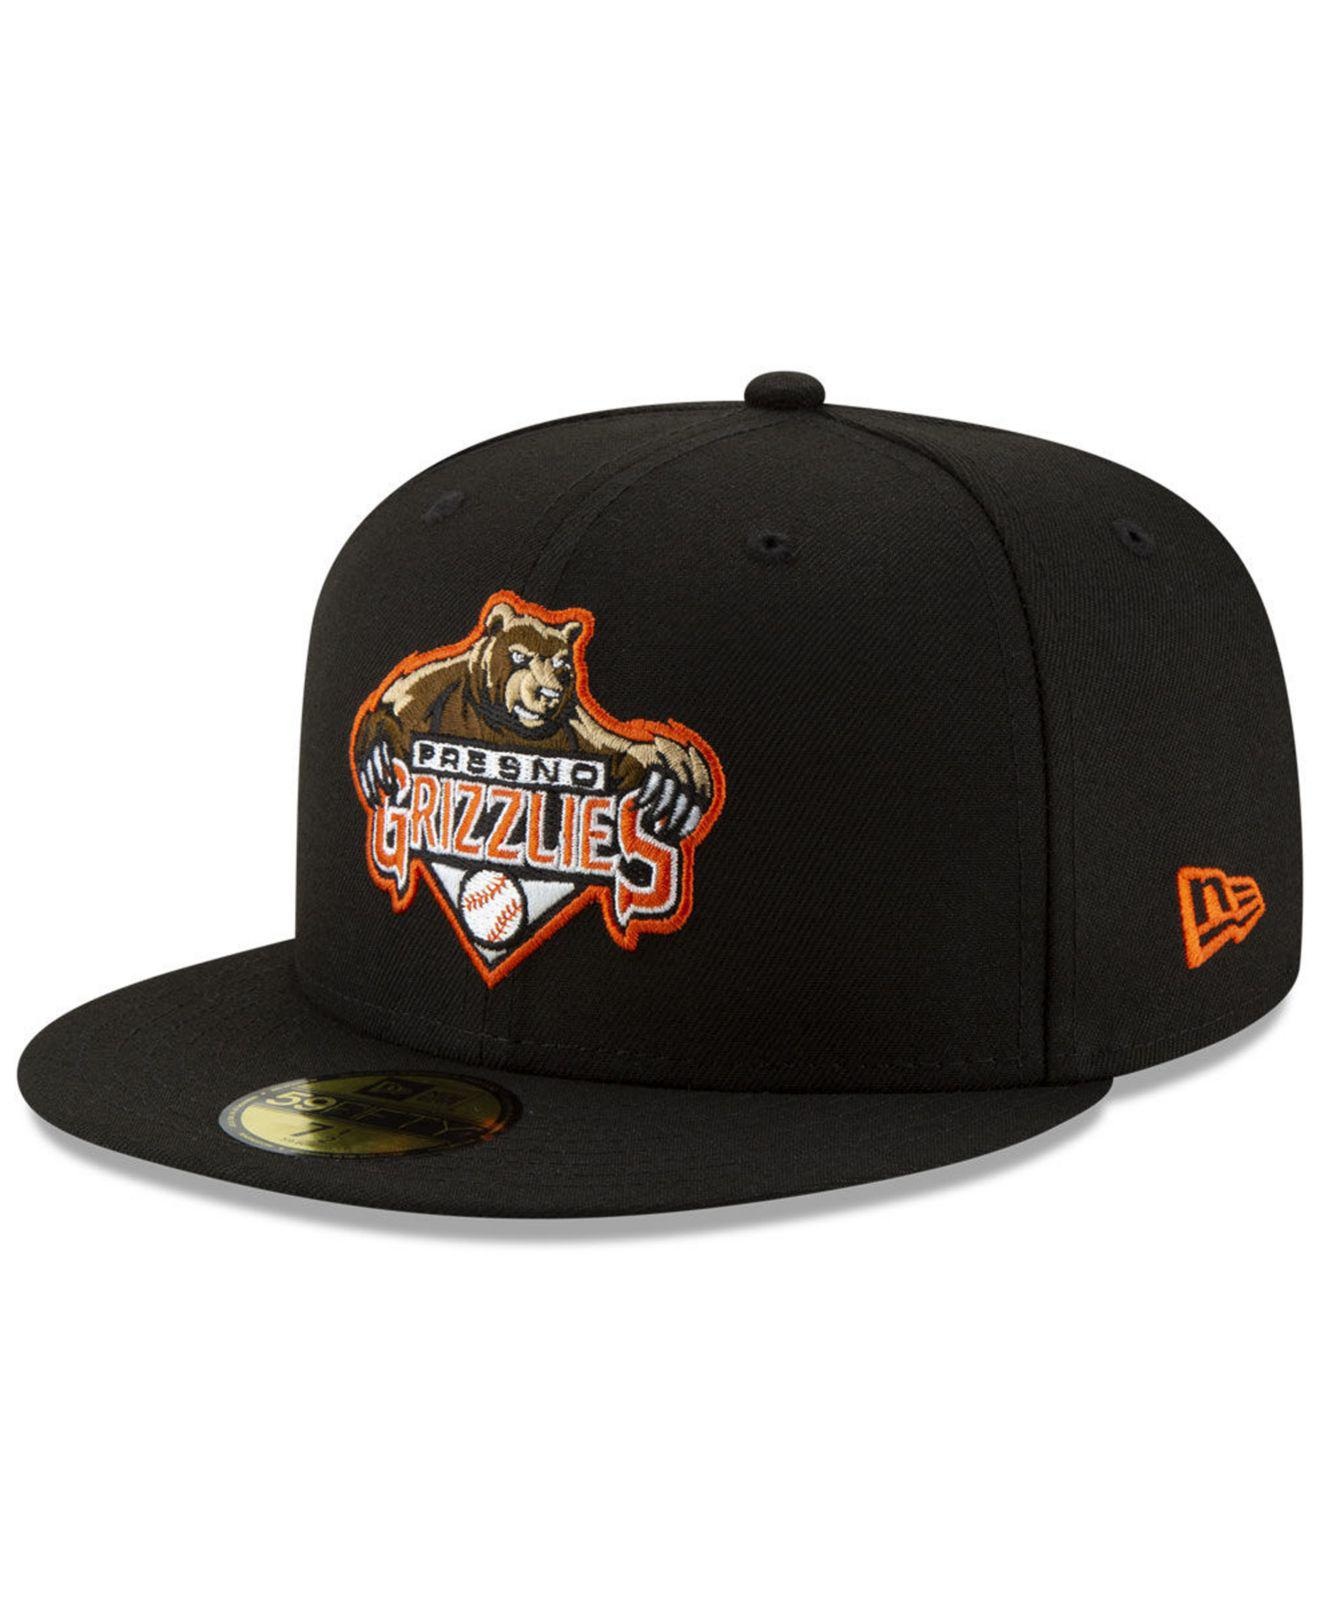 online store c9ec9 b3bbe Lyst - KTZ Fresno Grizzlies League Patch 59fifty-fitted Cap in Black for Men